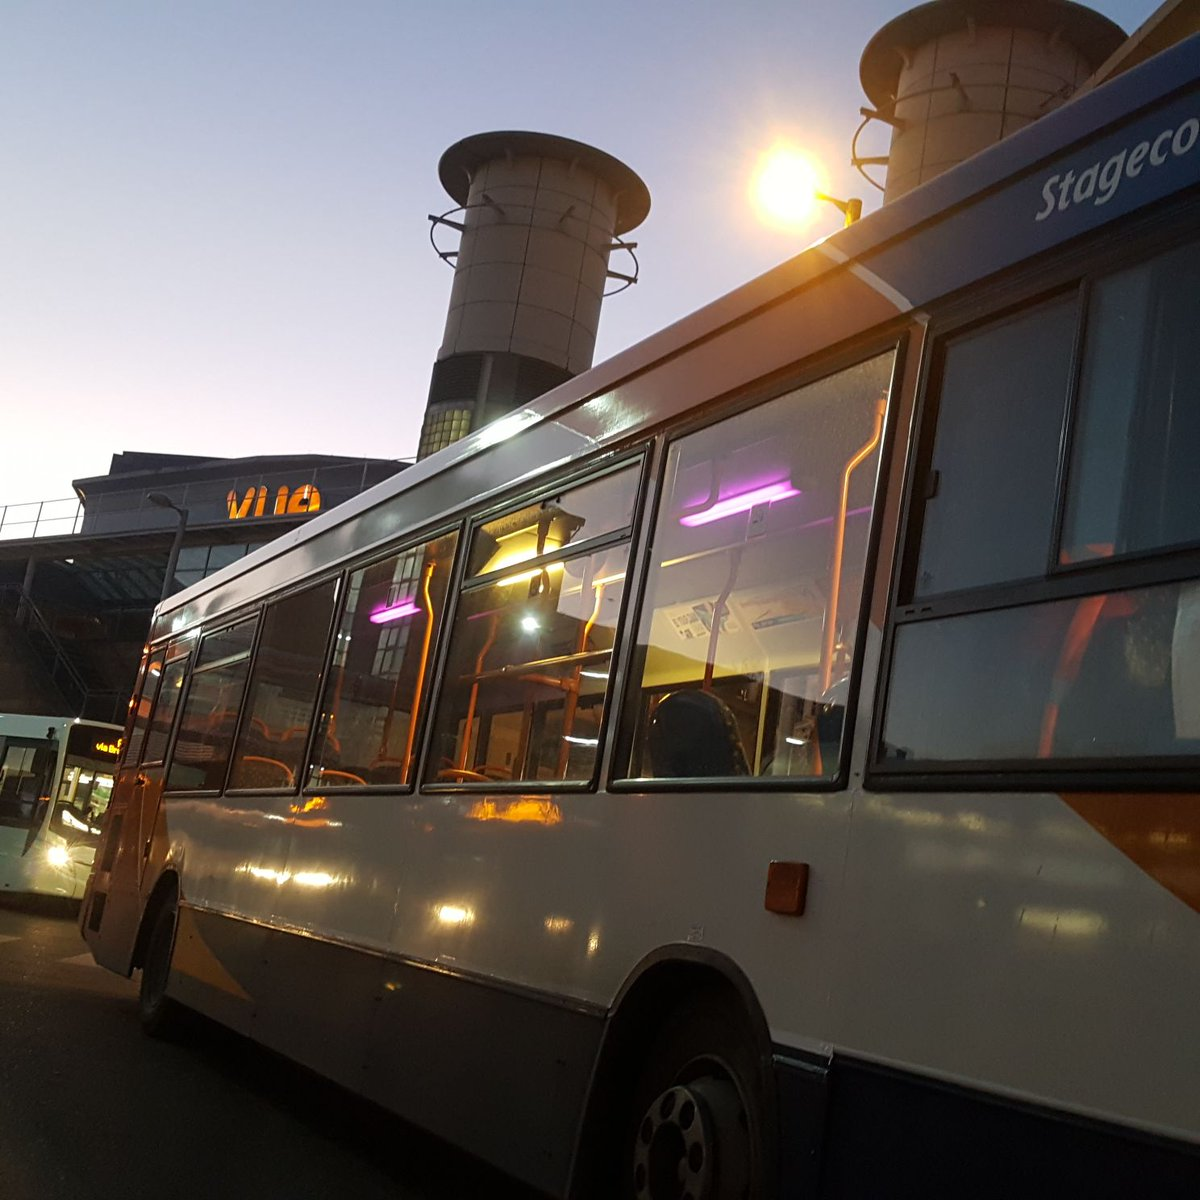 Thank you to Helen Smith and everyone at Stagecoach for lighting there bus lights purple and raising awareness in the workplace!!